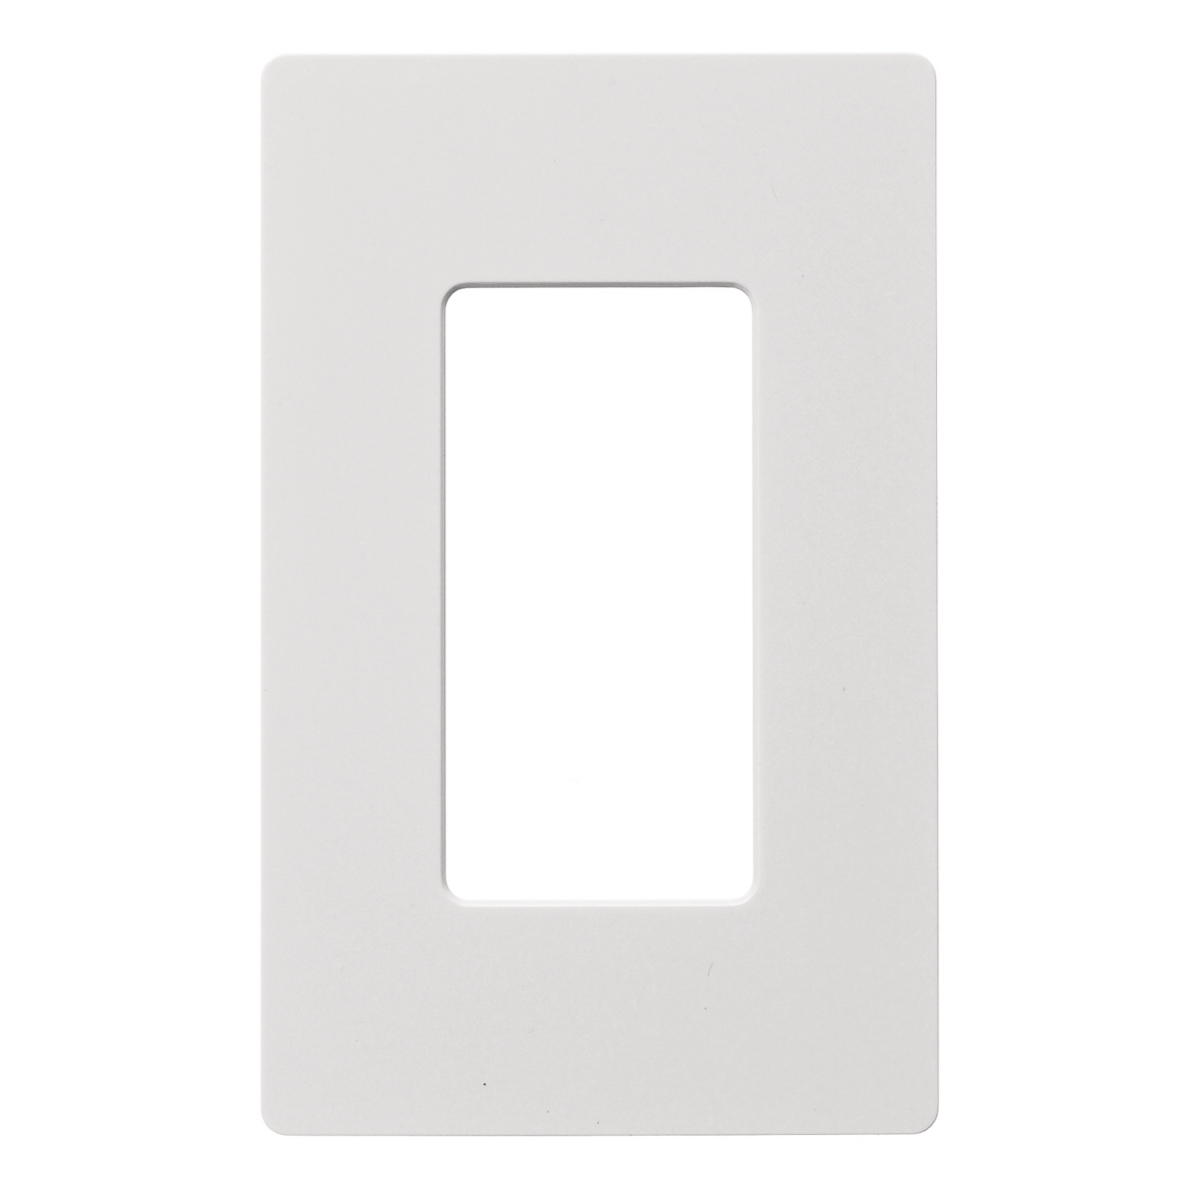 Hubbell RCW1W 1-Gang White Polycarbonate 1-Decorator Switch Snap-On Wallplate